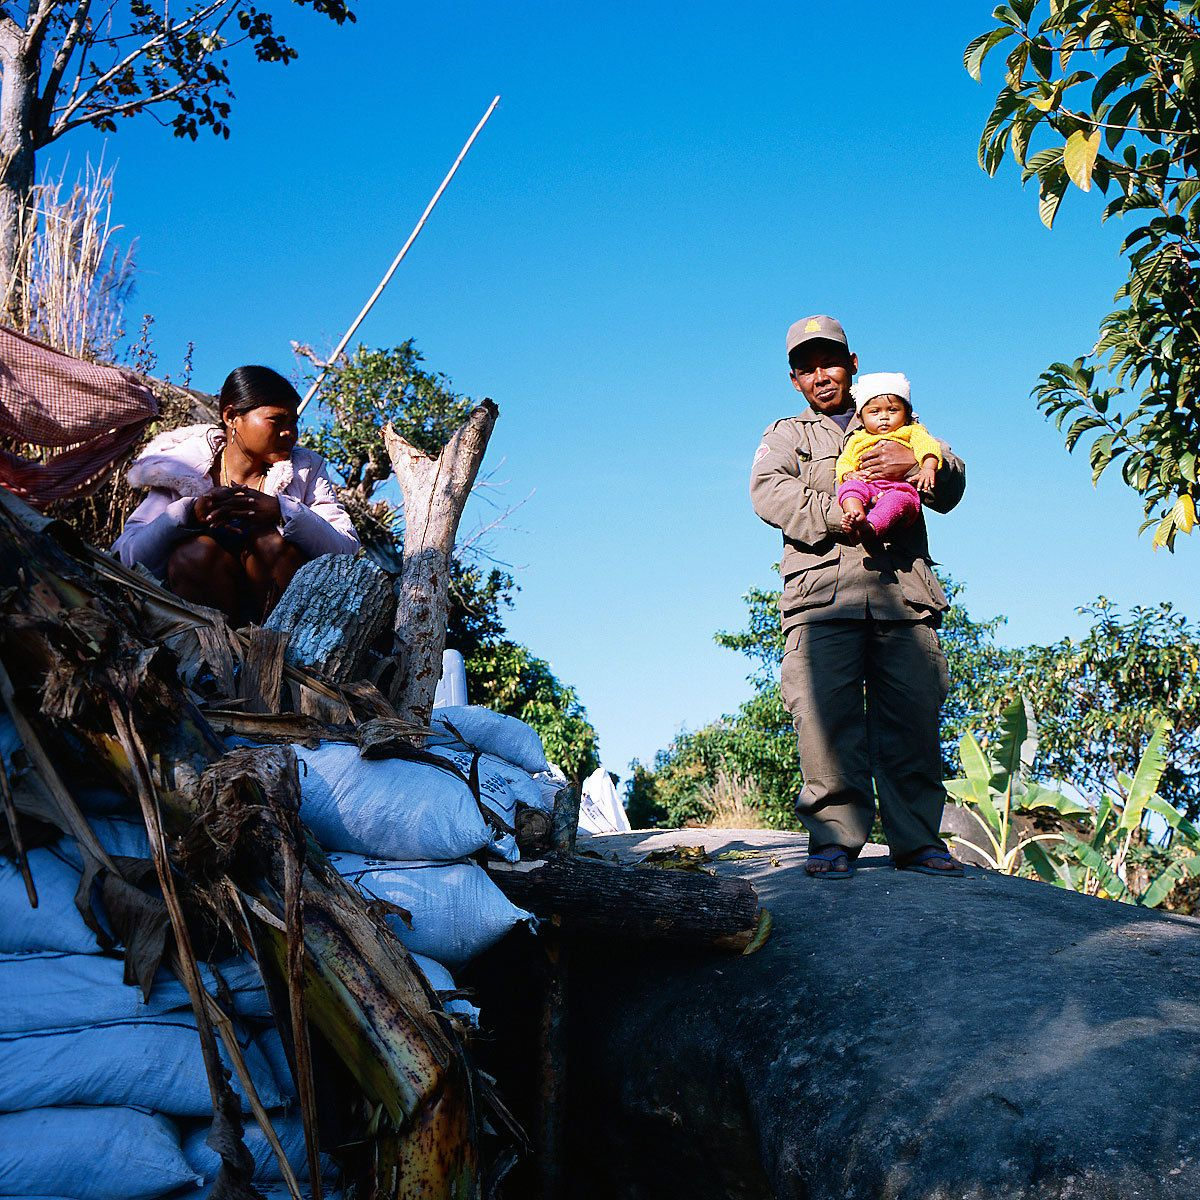 Lek, age 39, with his family in the front line.